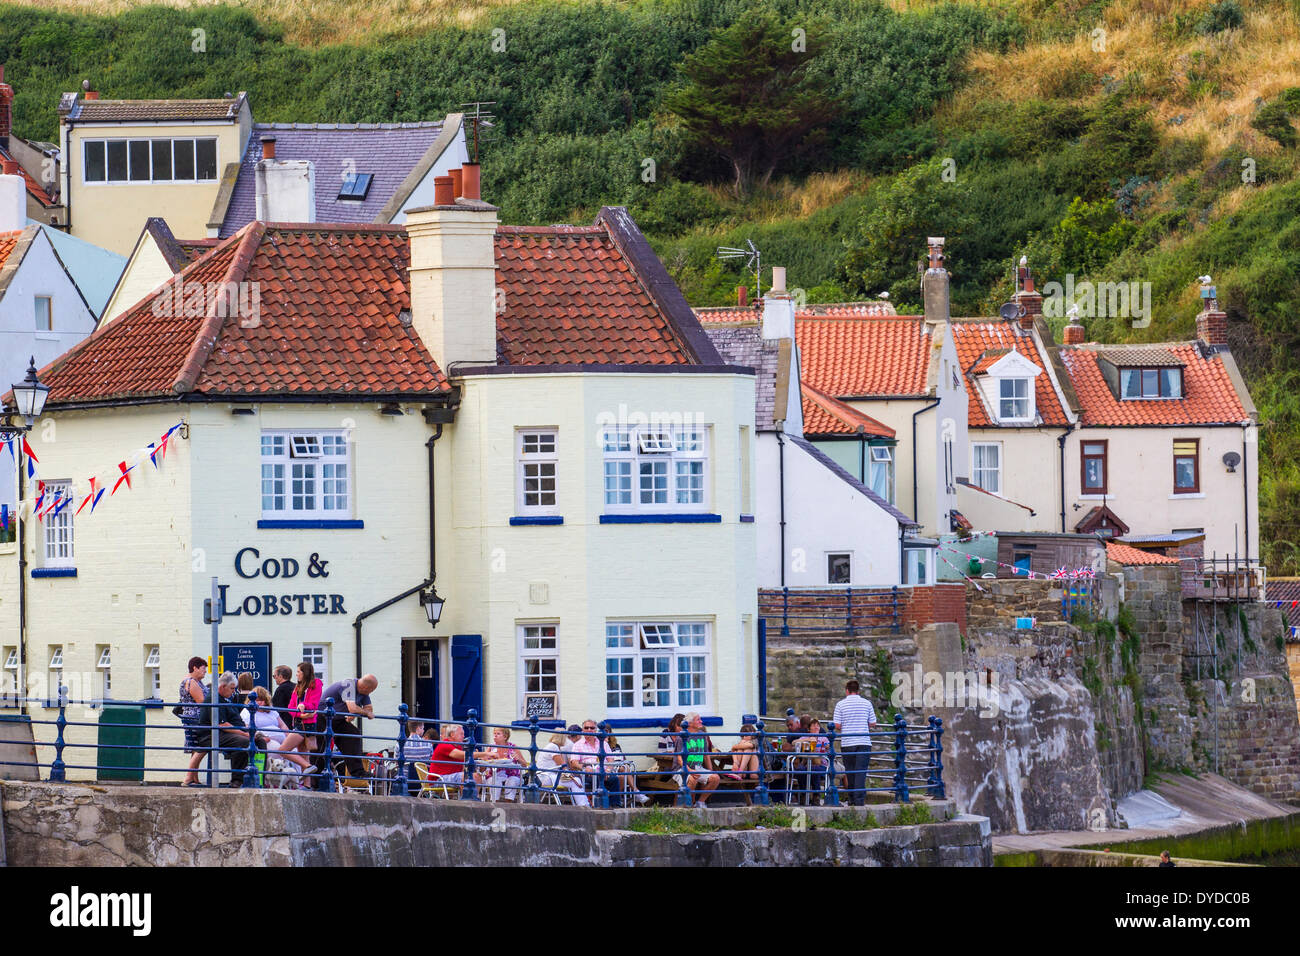 Holidaymakers enjoying a drink at a seaside pub. - Stock Image